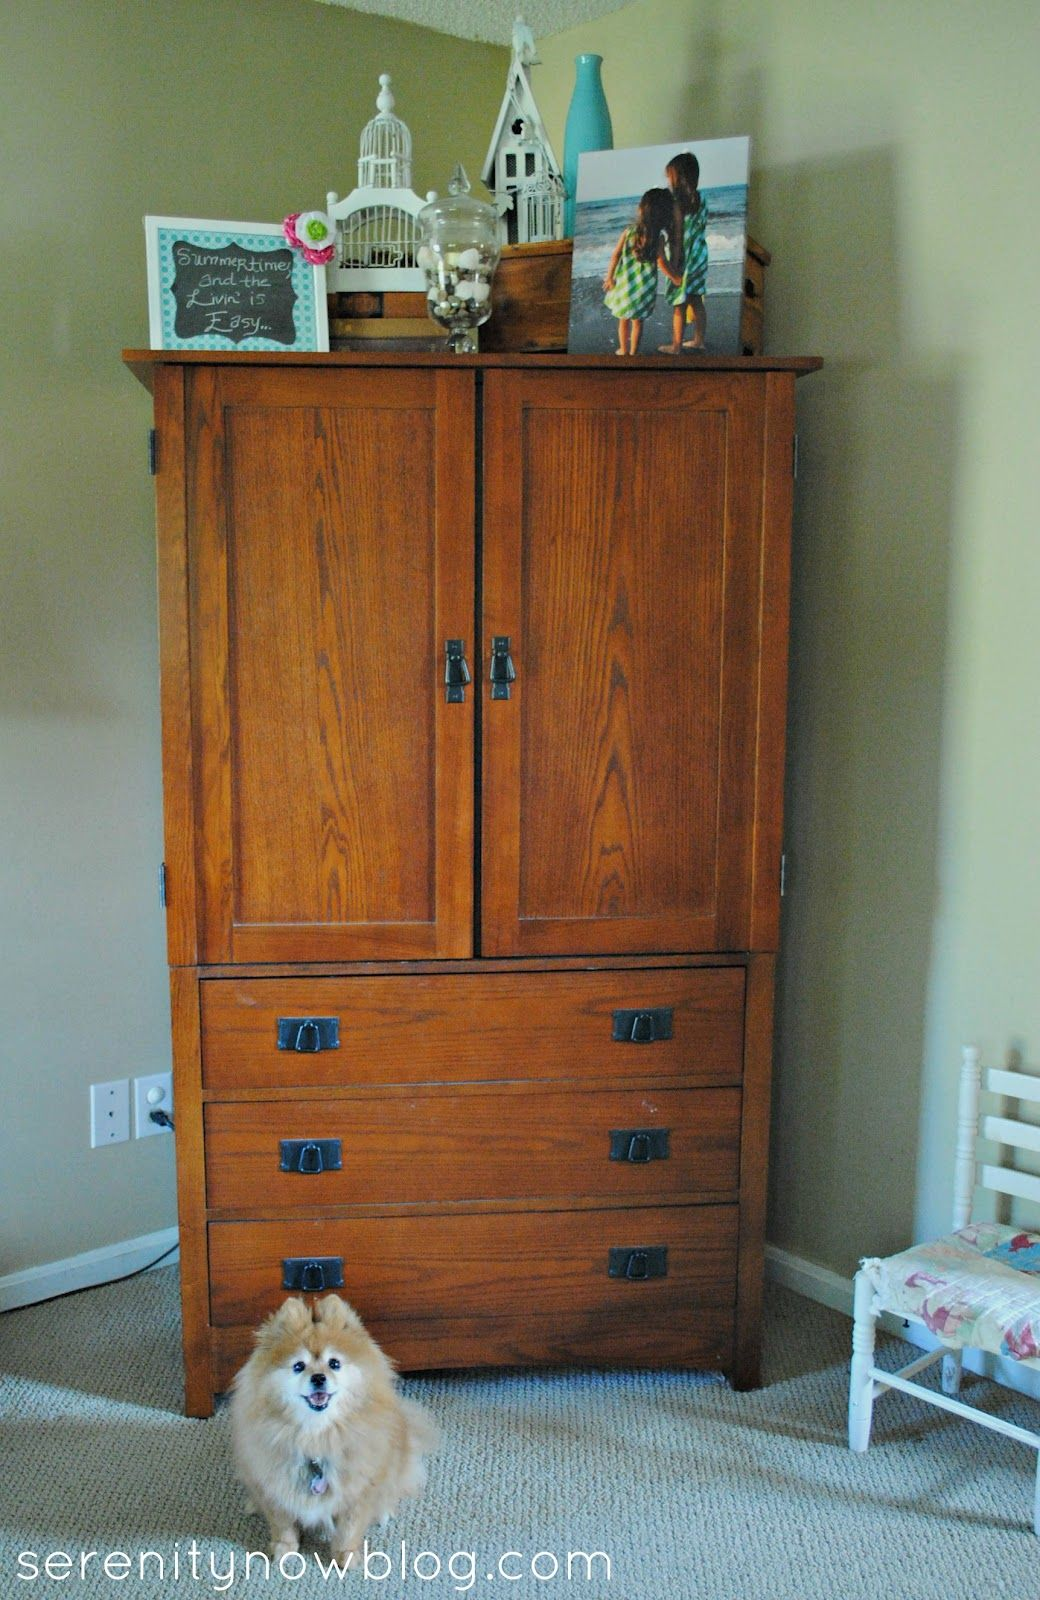 Awe Inspiring Decorating Top Of Armoire Google Search Decorating Pinterest Largest Home Design Picture Inspirations Pitcheantrous